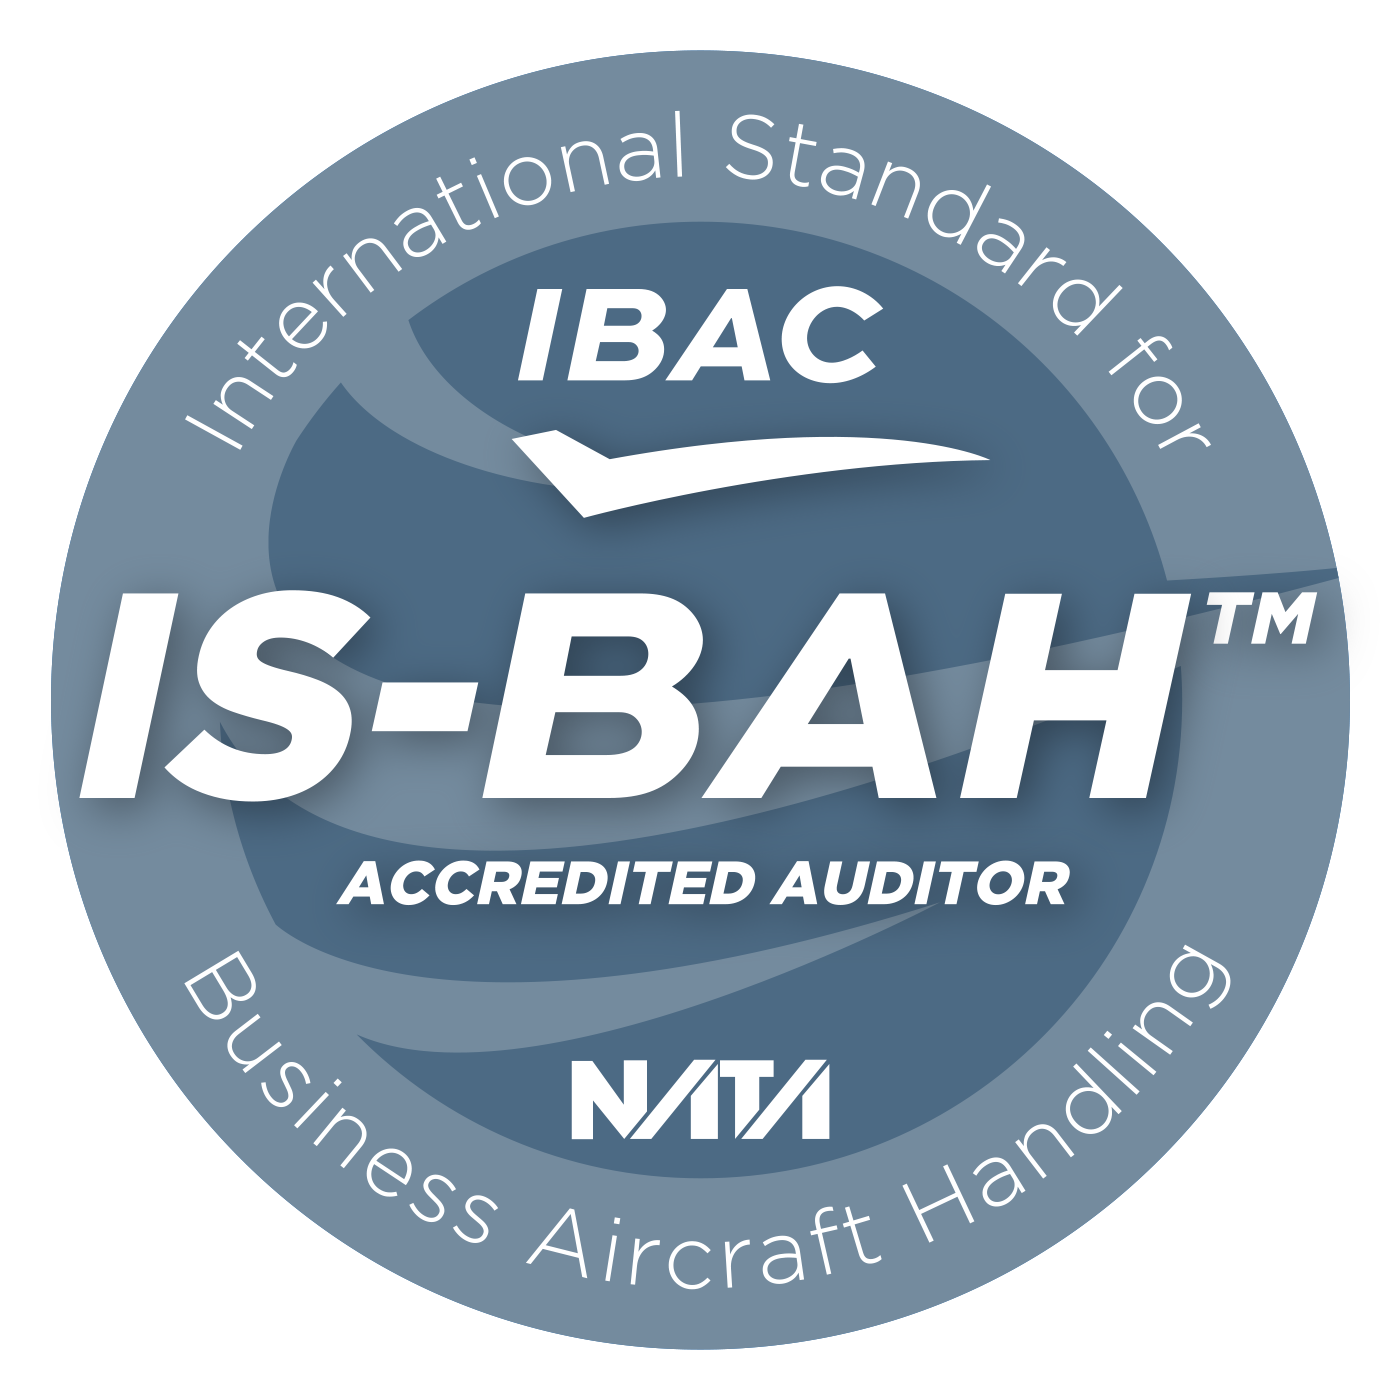 Is bah accredited auditor